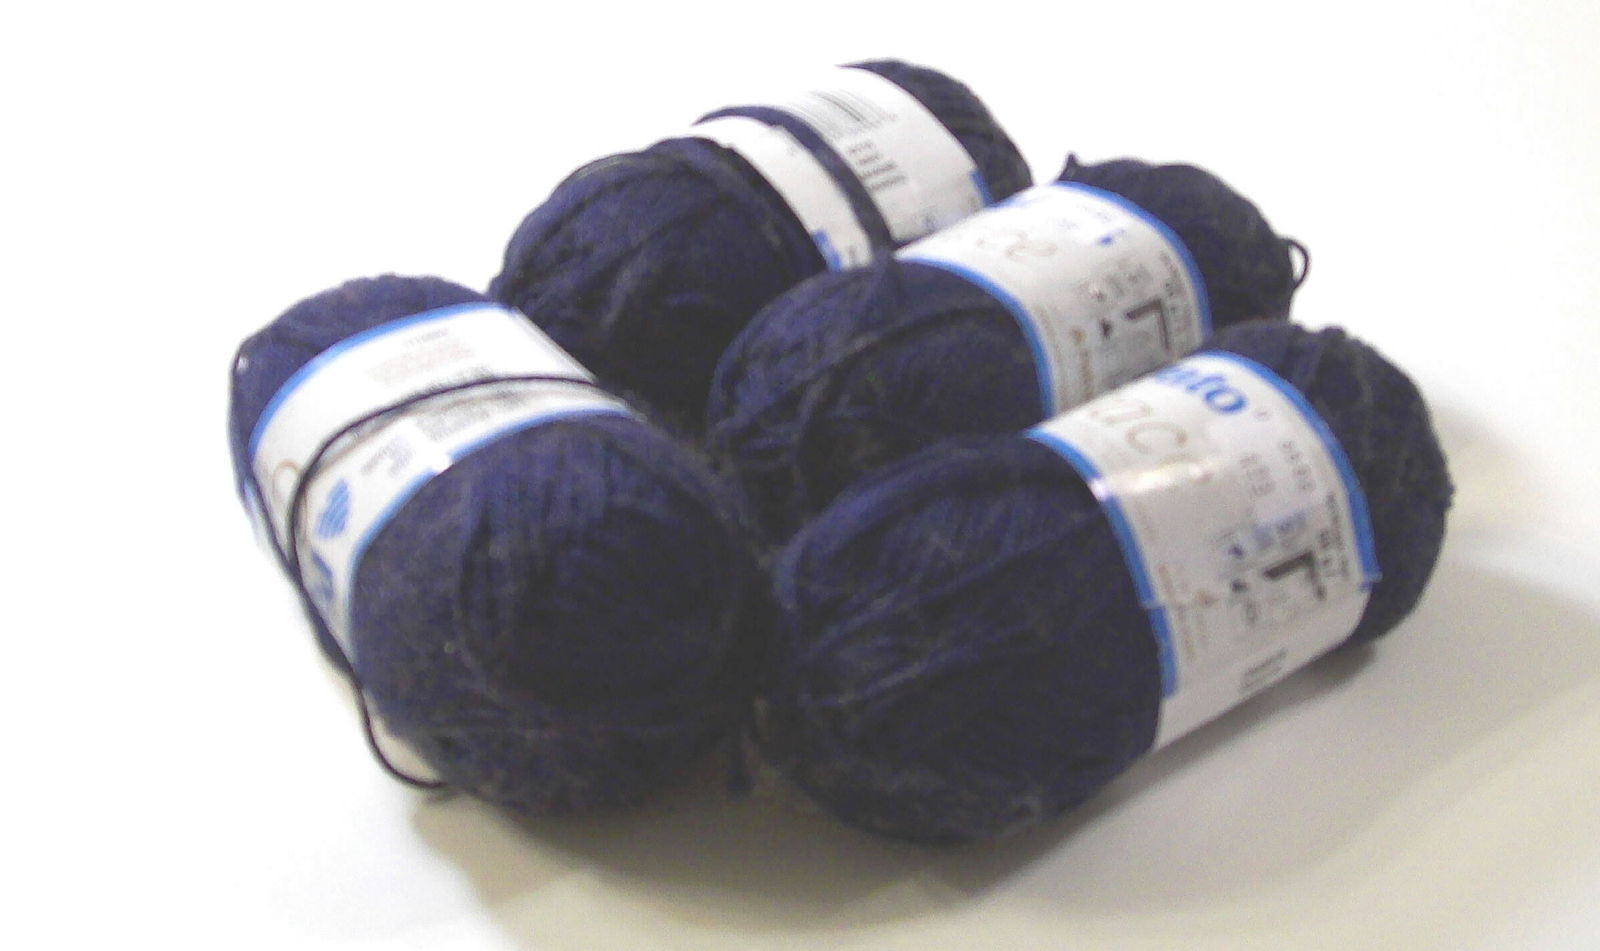 Patons Grace Yarn, 100% Mercerized Cotton, Navy Color